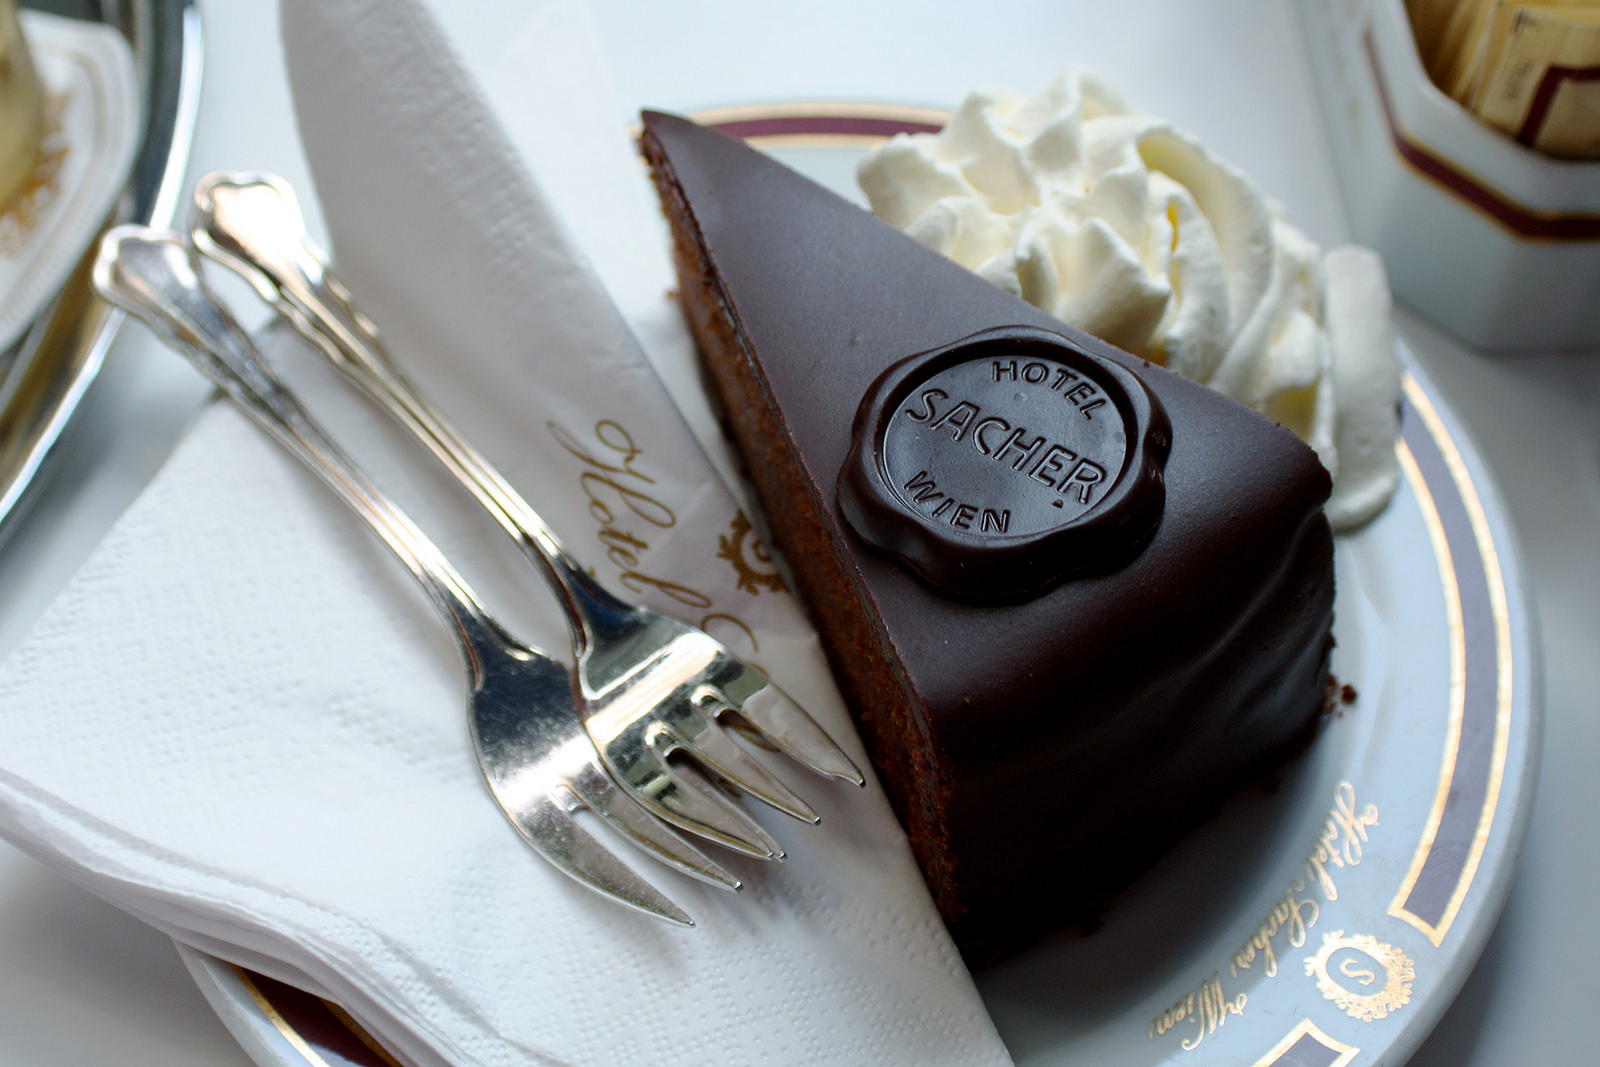 Sacher Torte in Vienna – The Original Cake War